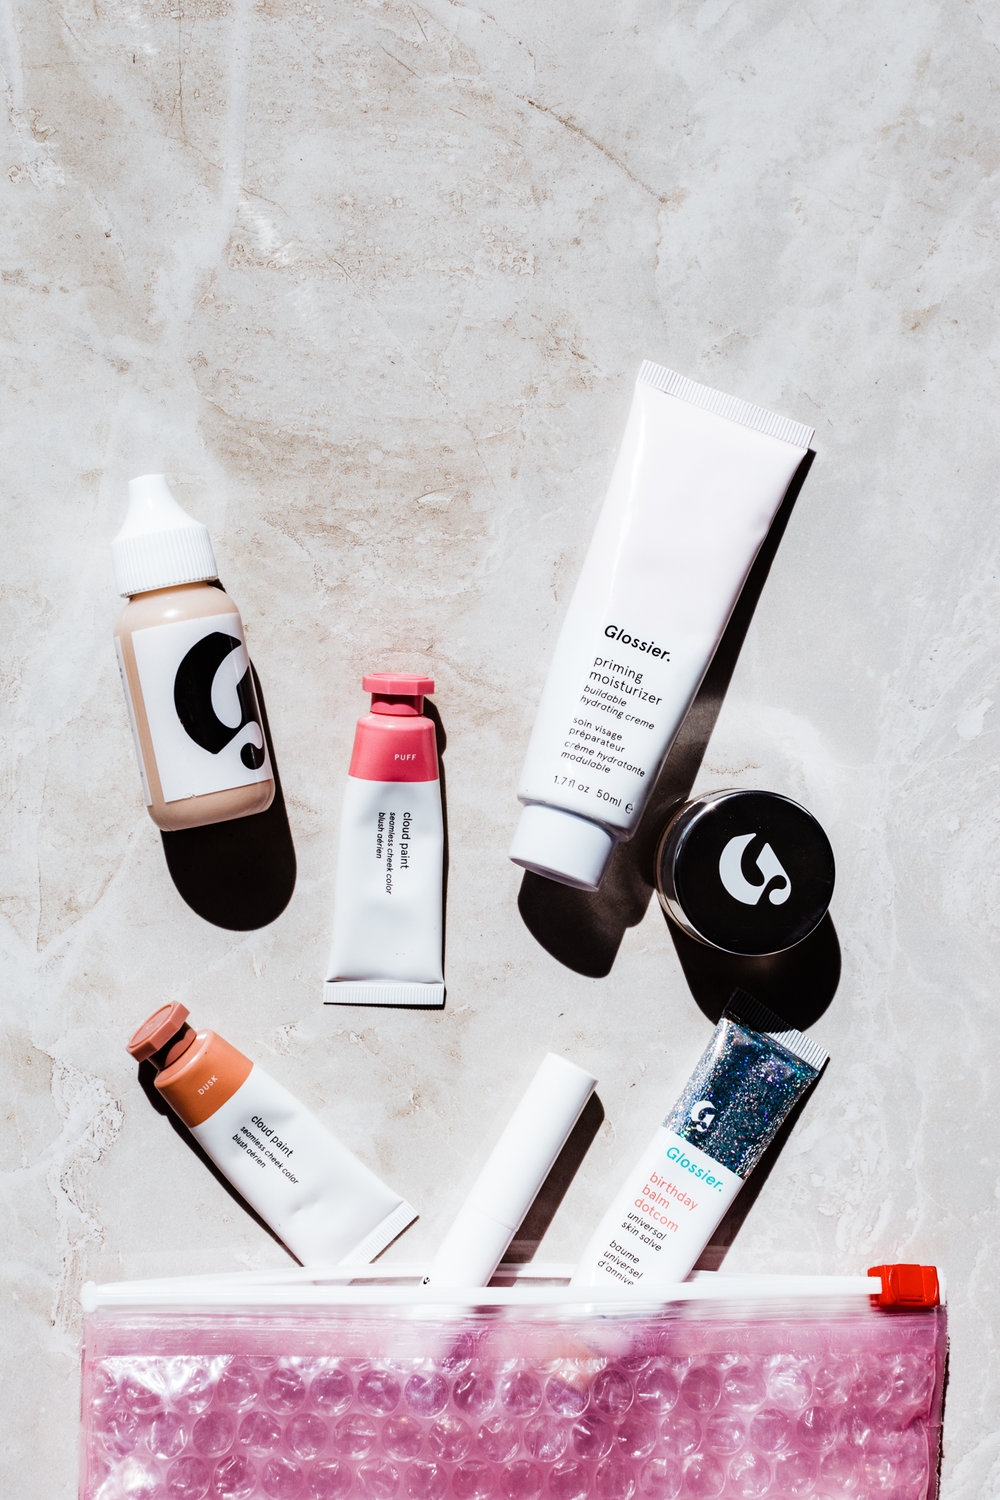 glossier cloud paint haloscope balm dot com priming moistuirizer stretch concealer skin perfecting tint generation g zip - styleapotheca